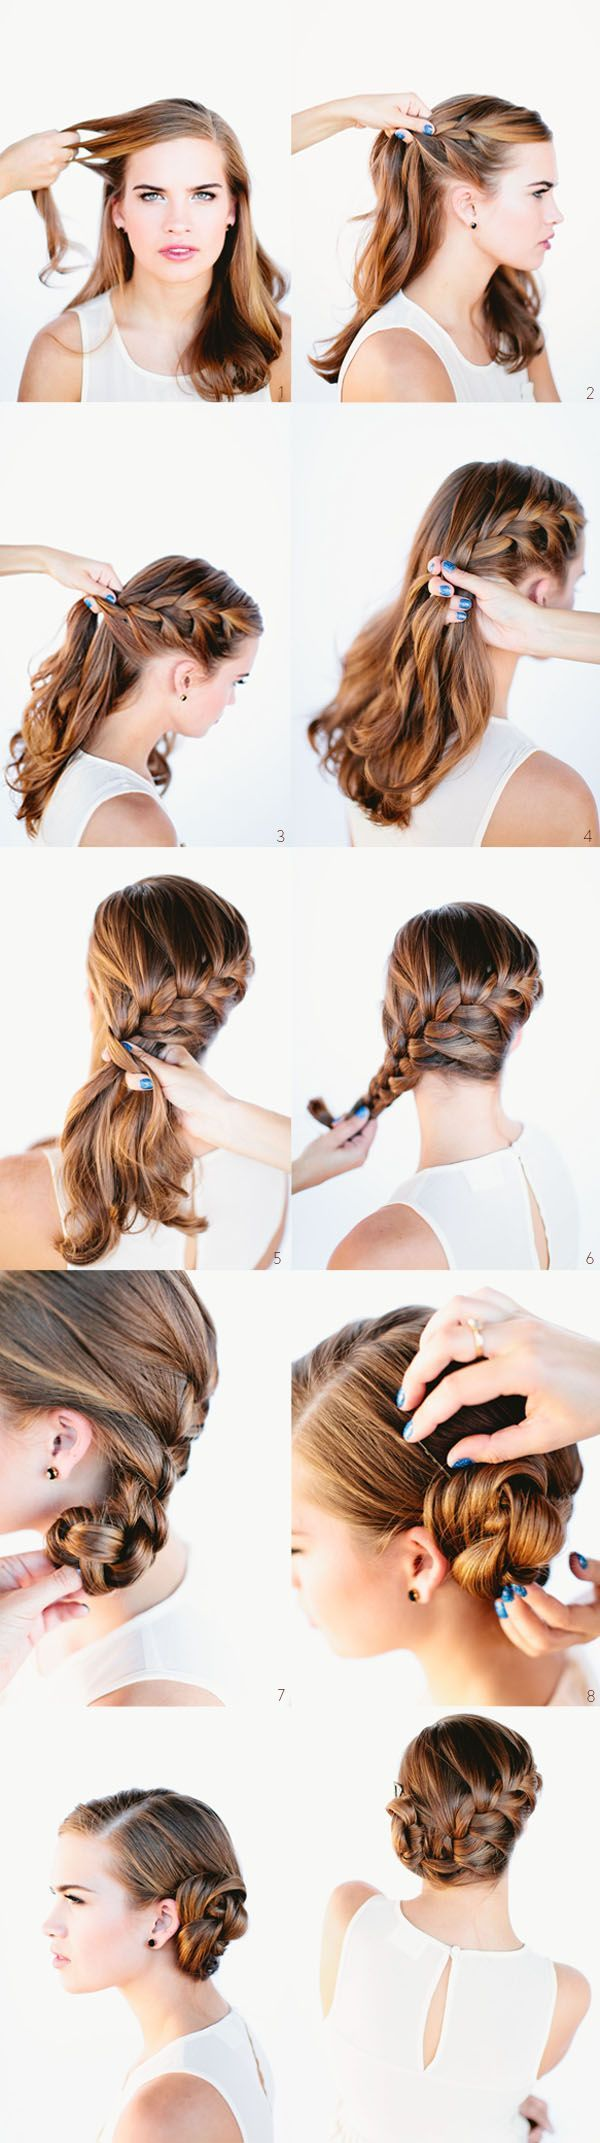 I absolutely love this braided updo.  Simple updo that is very elegant.